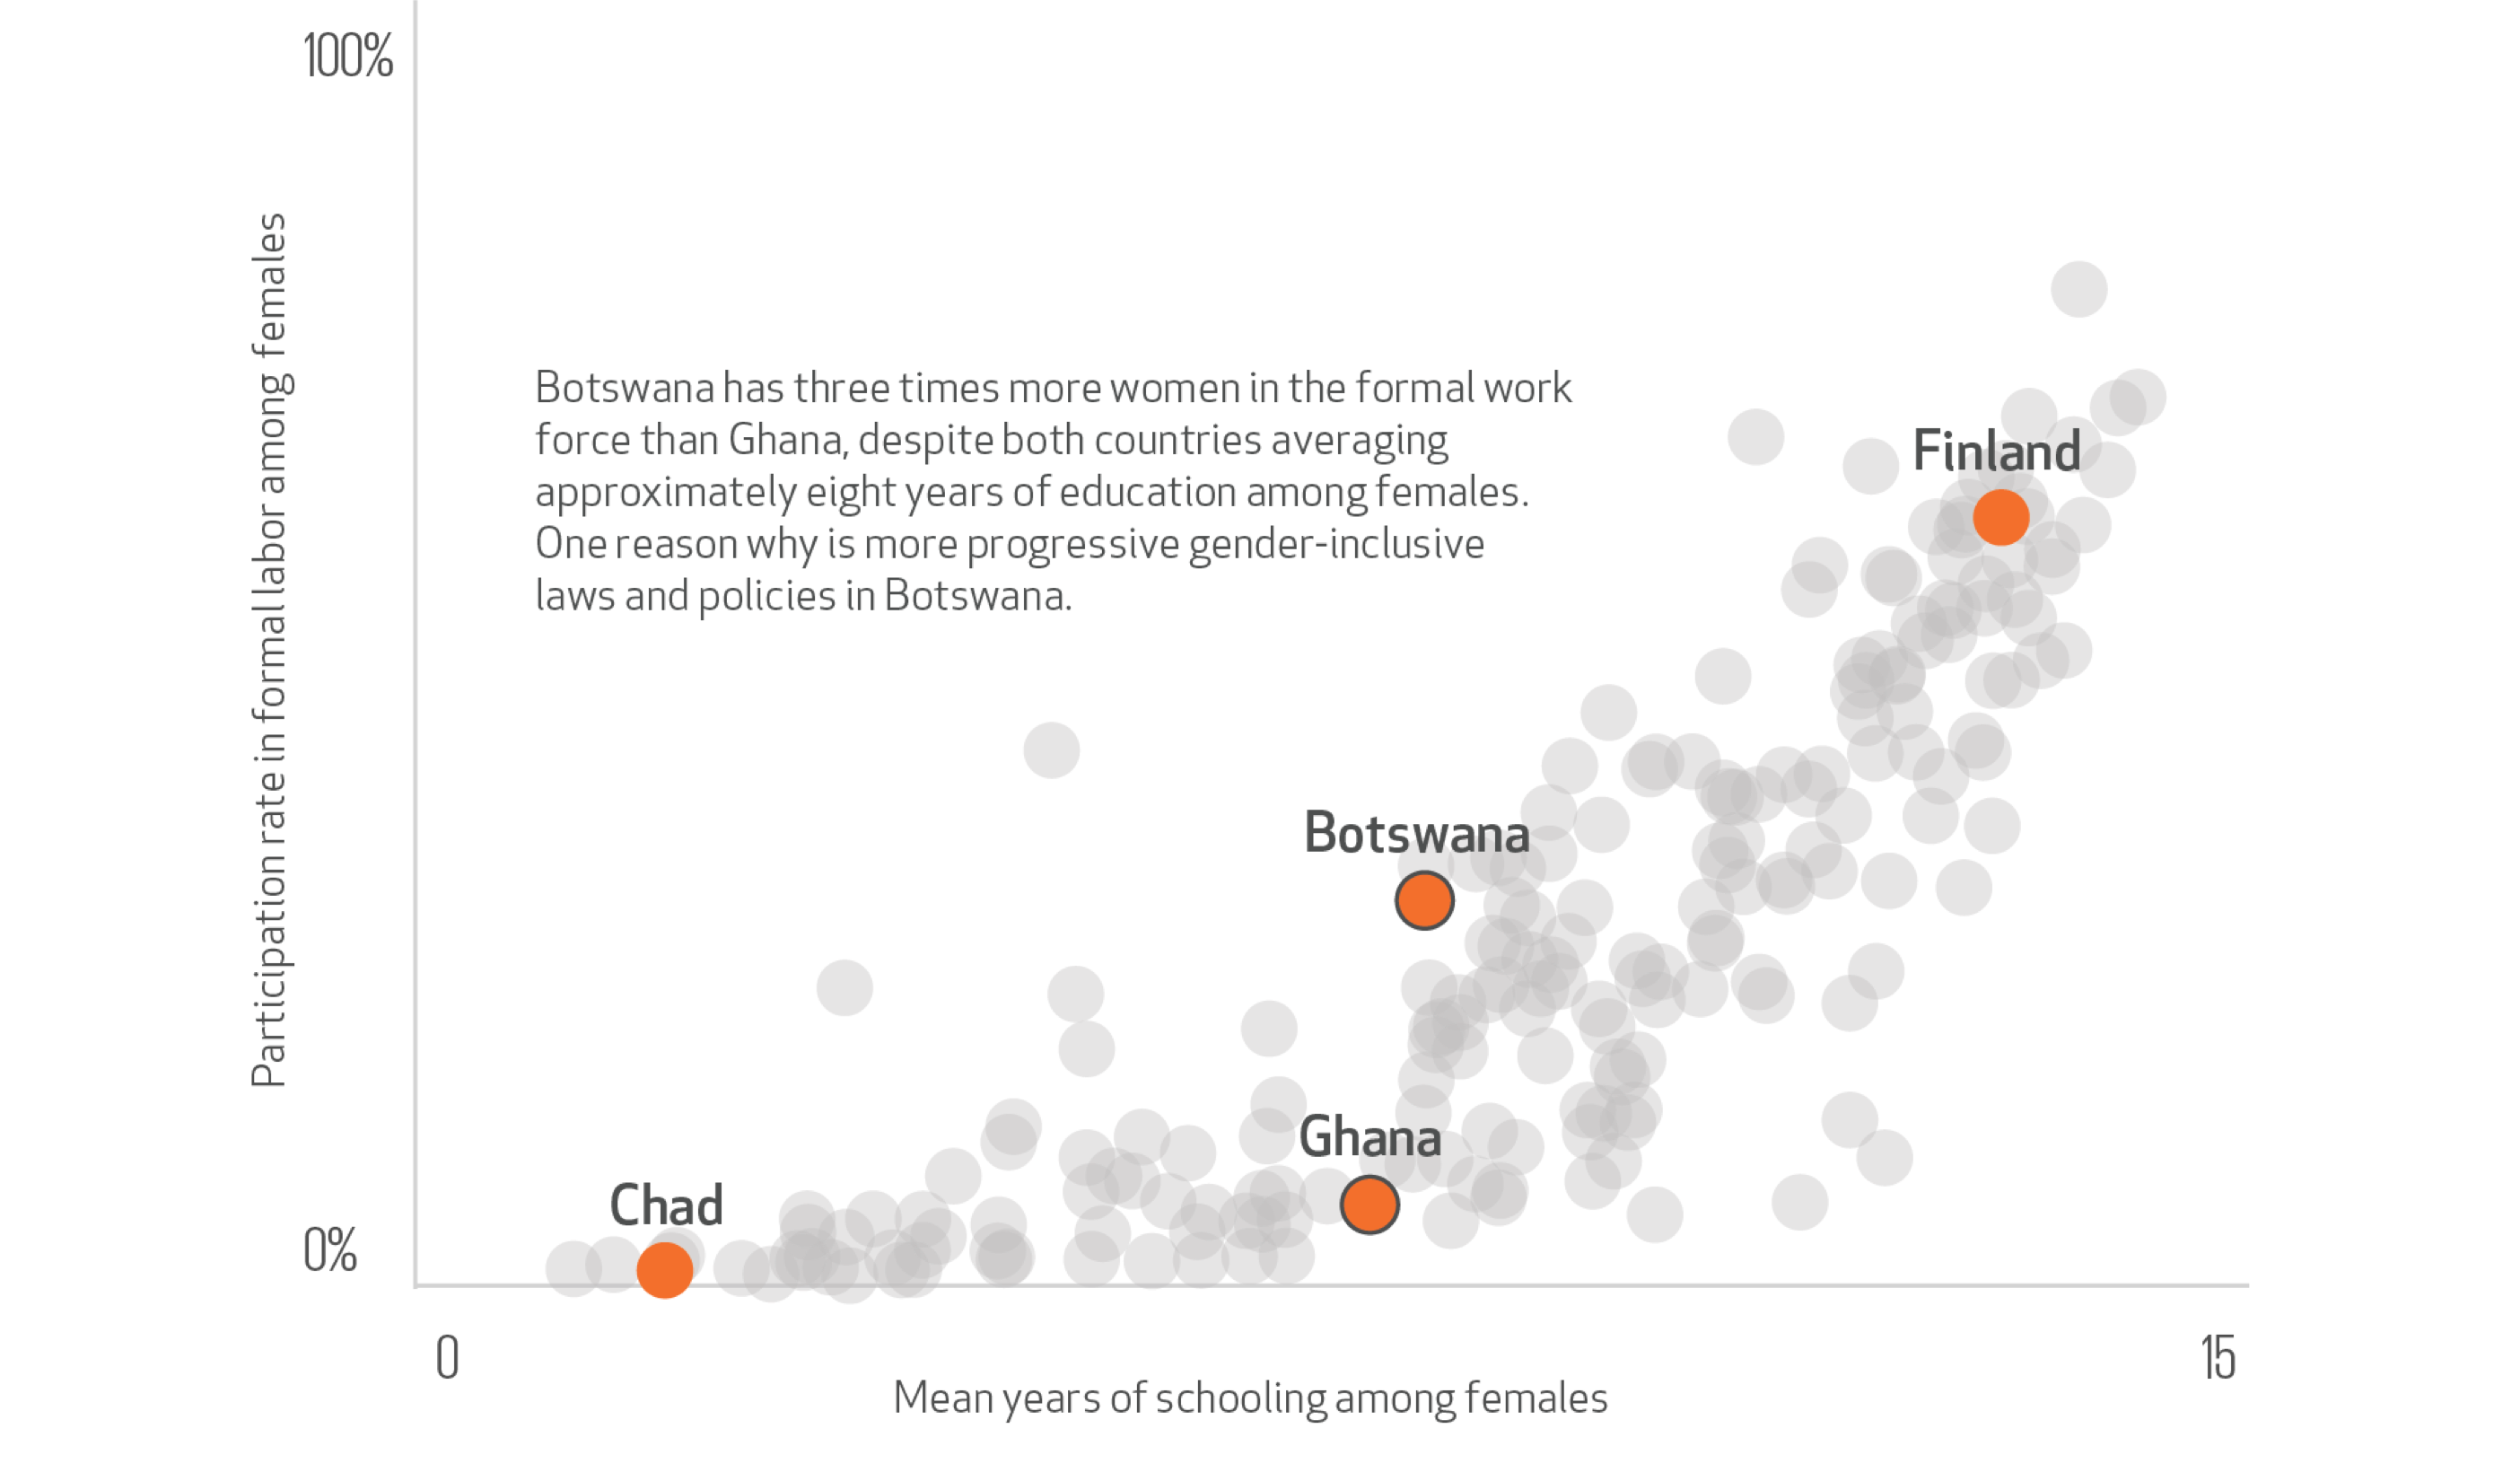 Chart showing that education is insufficient to close the gender gap